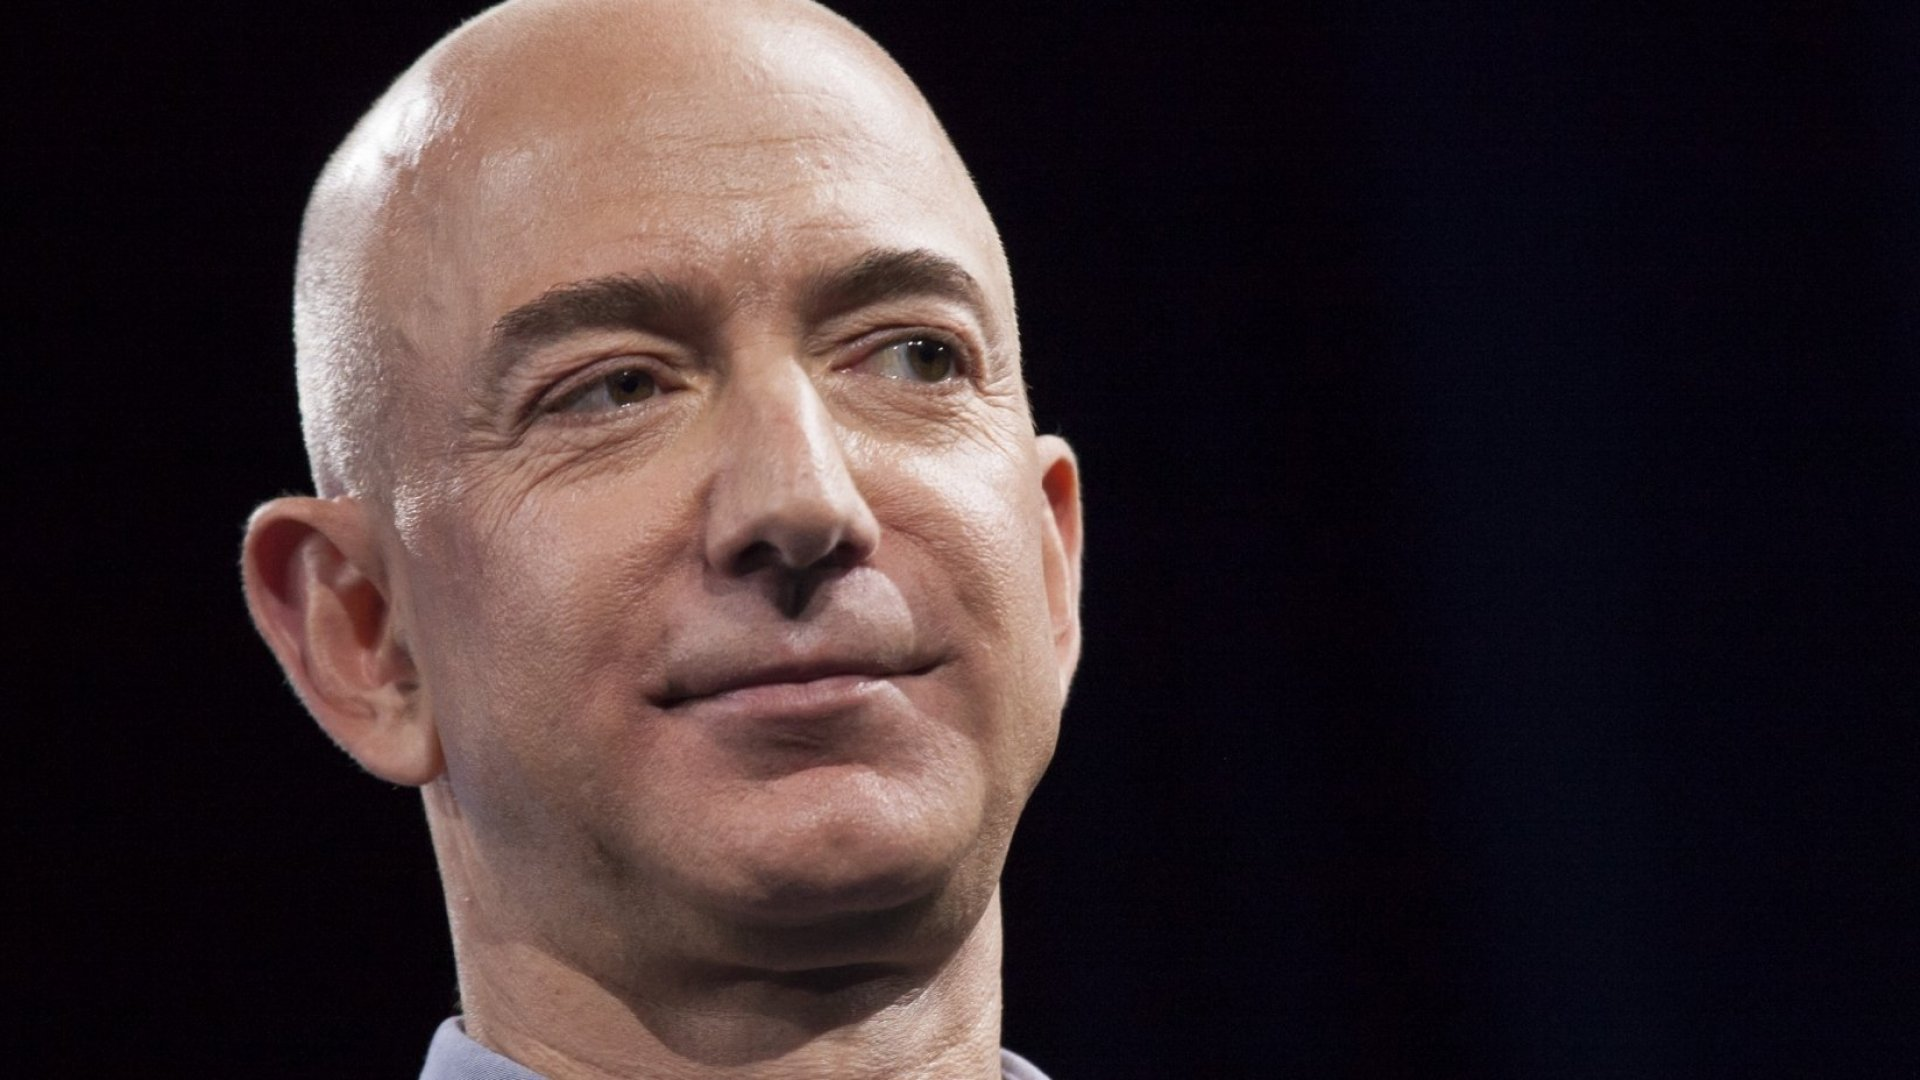 Amazon CEO Jeff Bezos ShowedOff His Exciting Vacation on Twitter. What Happened Next Wasn't Pretty